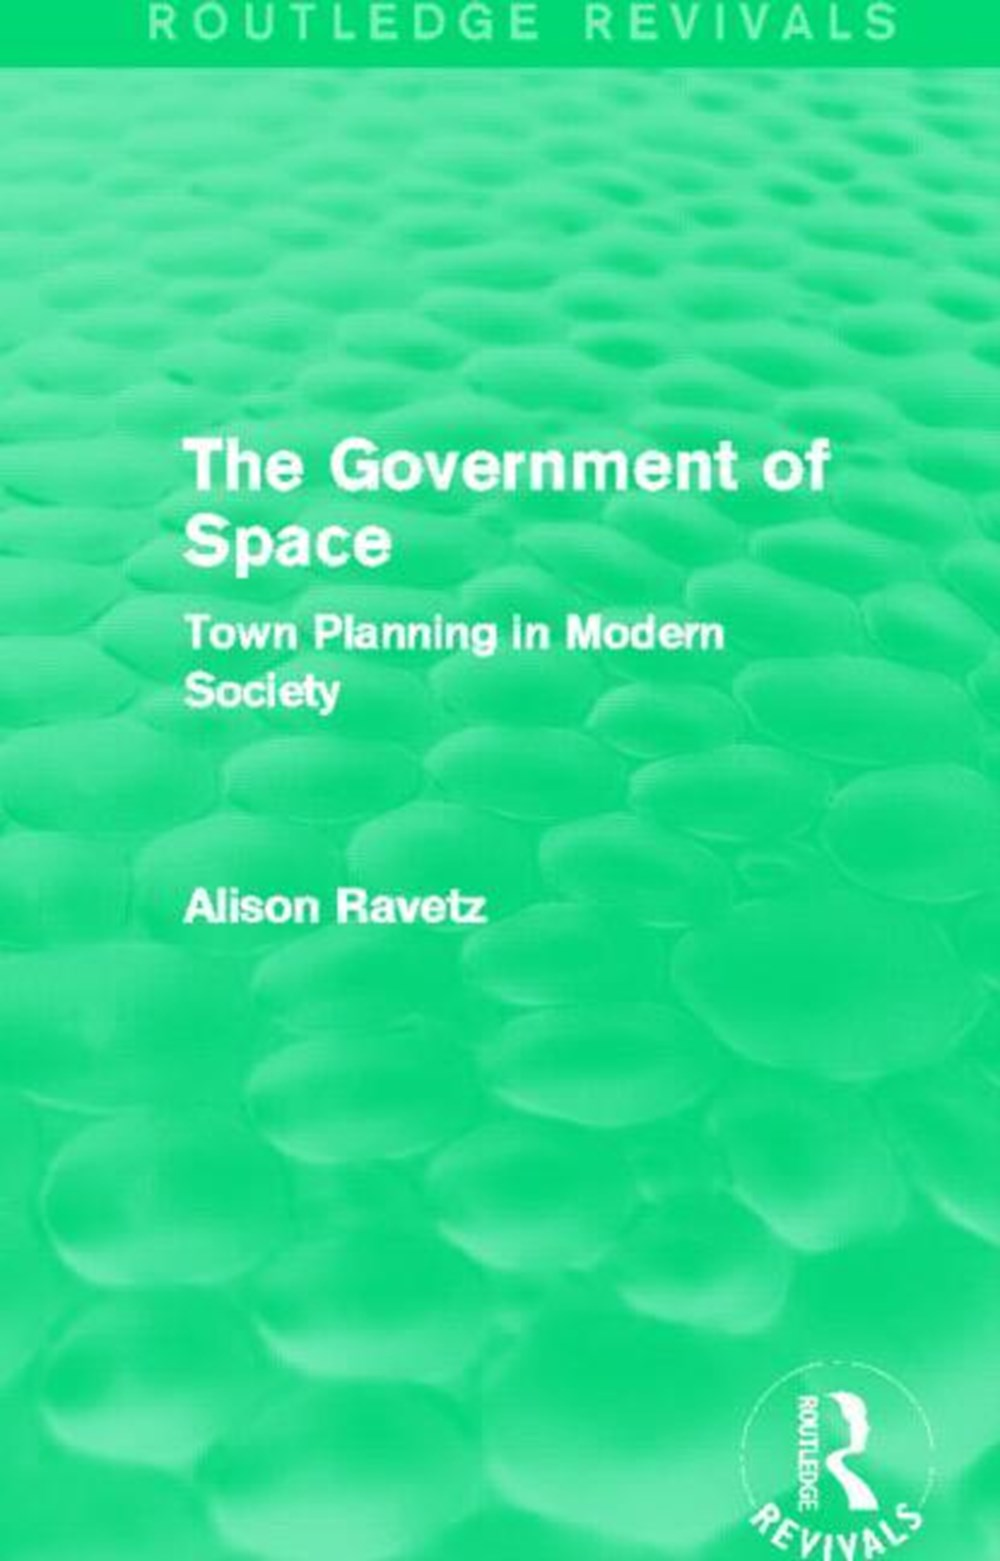 Government of Space (Routledge Revivals) Town Planning in Modern Society